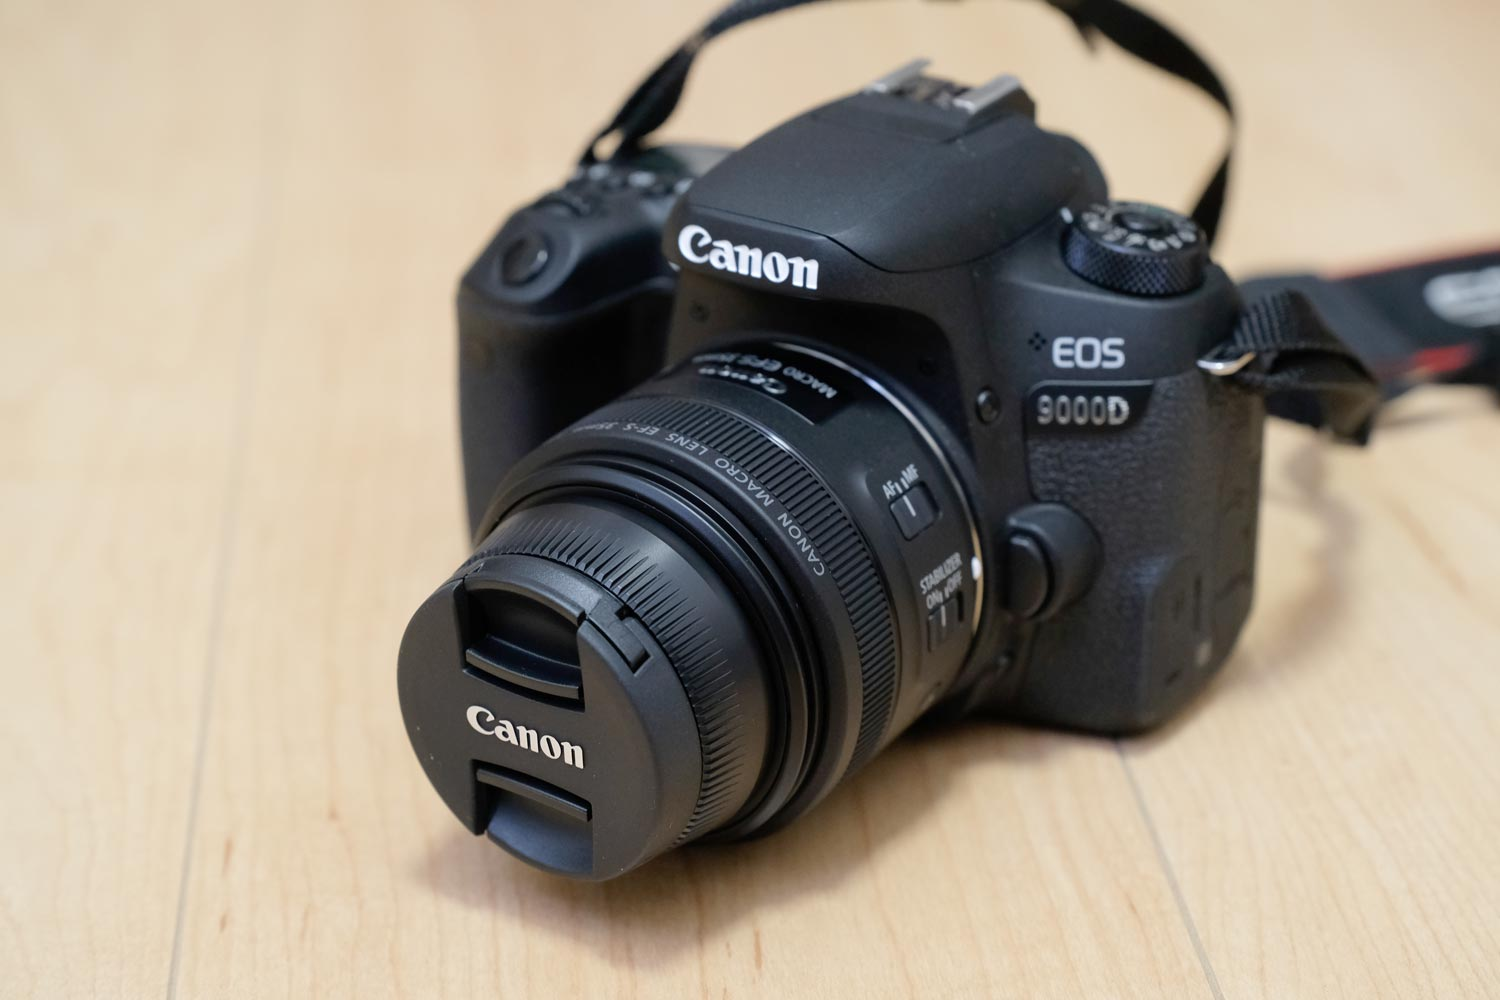 EOS 9000DとEF-S35mm F2.8 マクロ IS STM